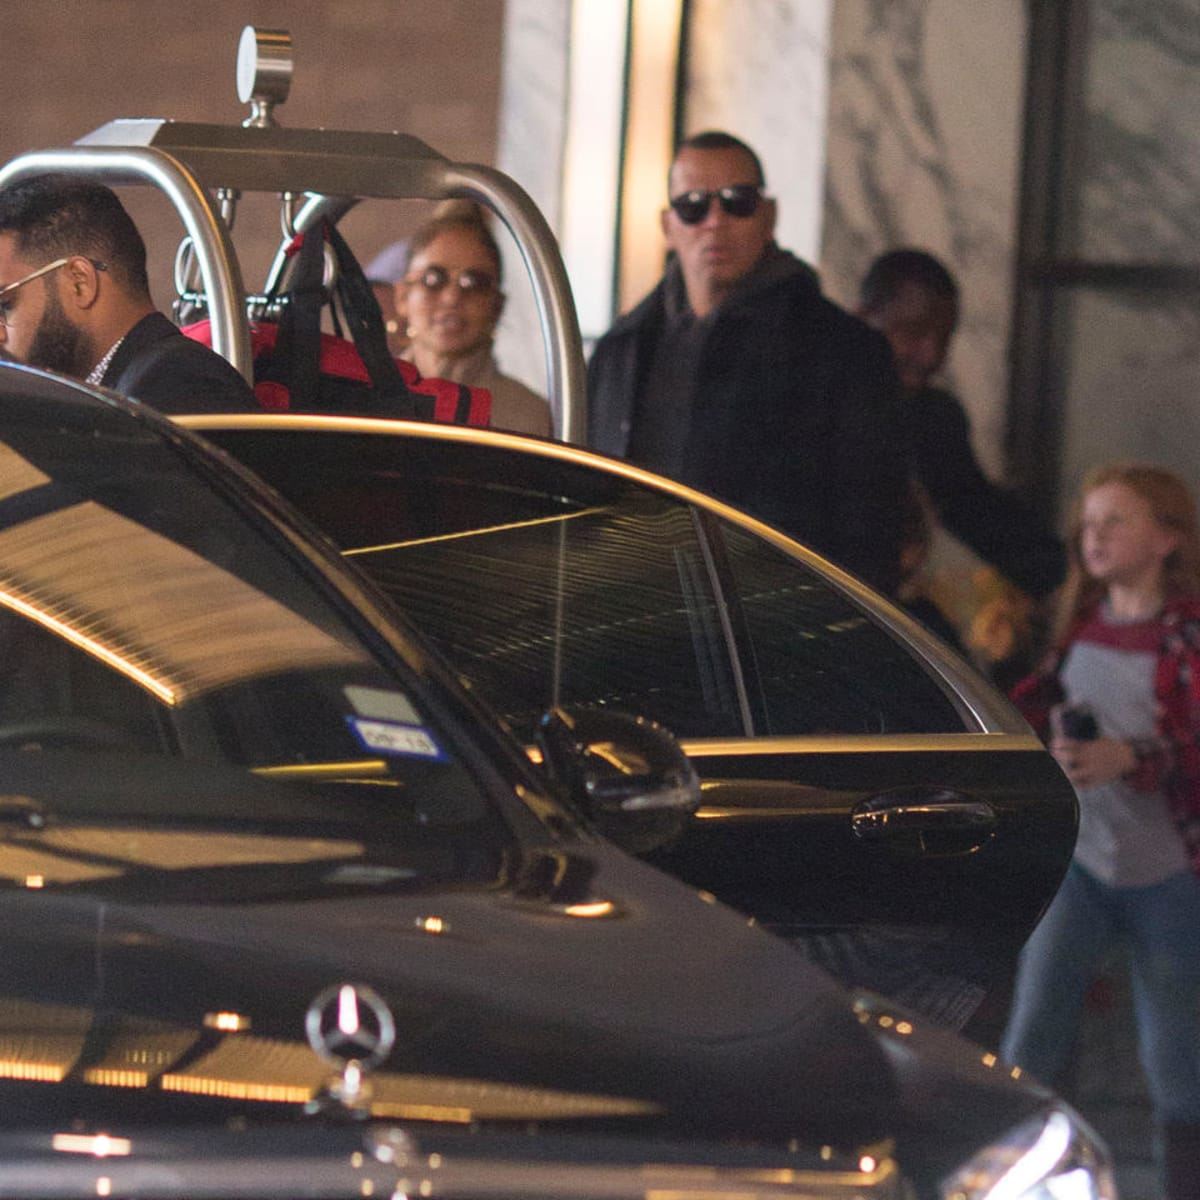 Jennifer Lopez and Alex Rodriguez check out of Four Seasons Hotel after Game 5 of World Series